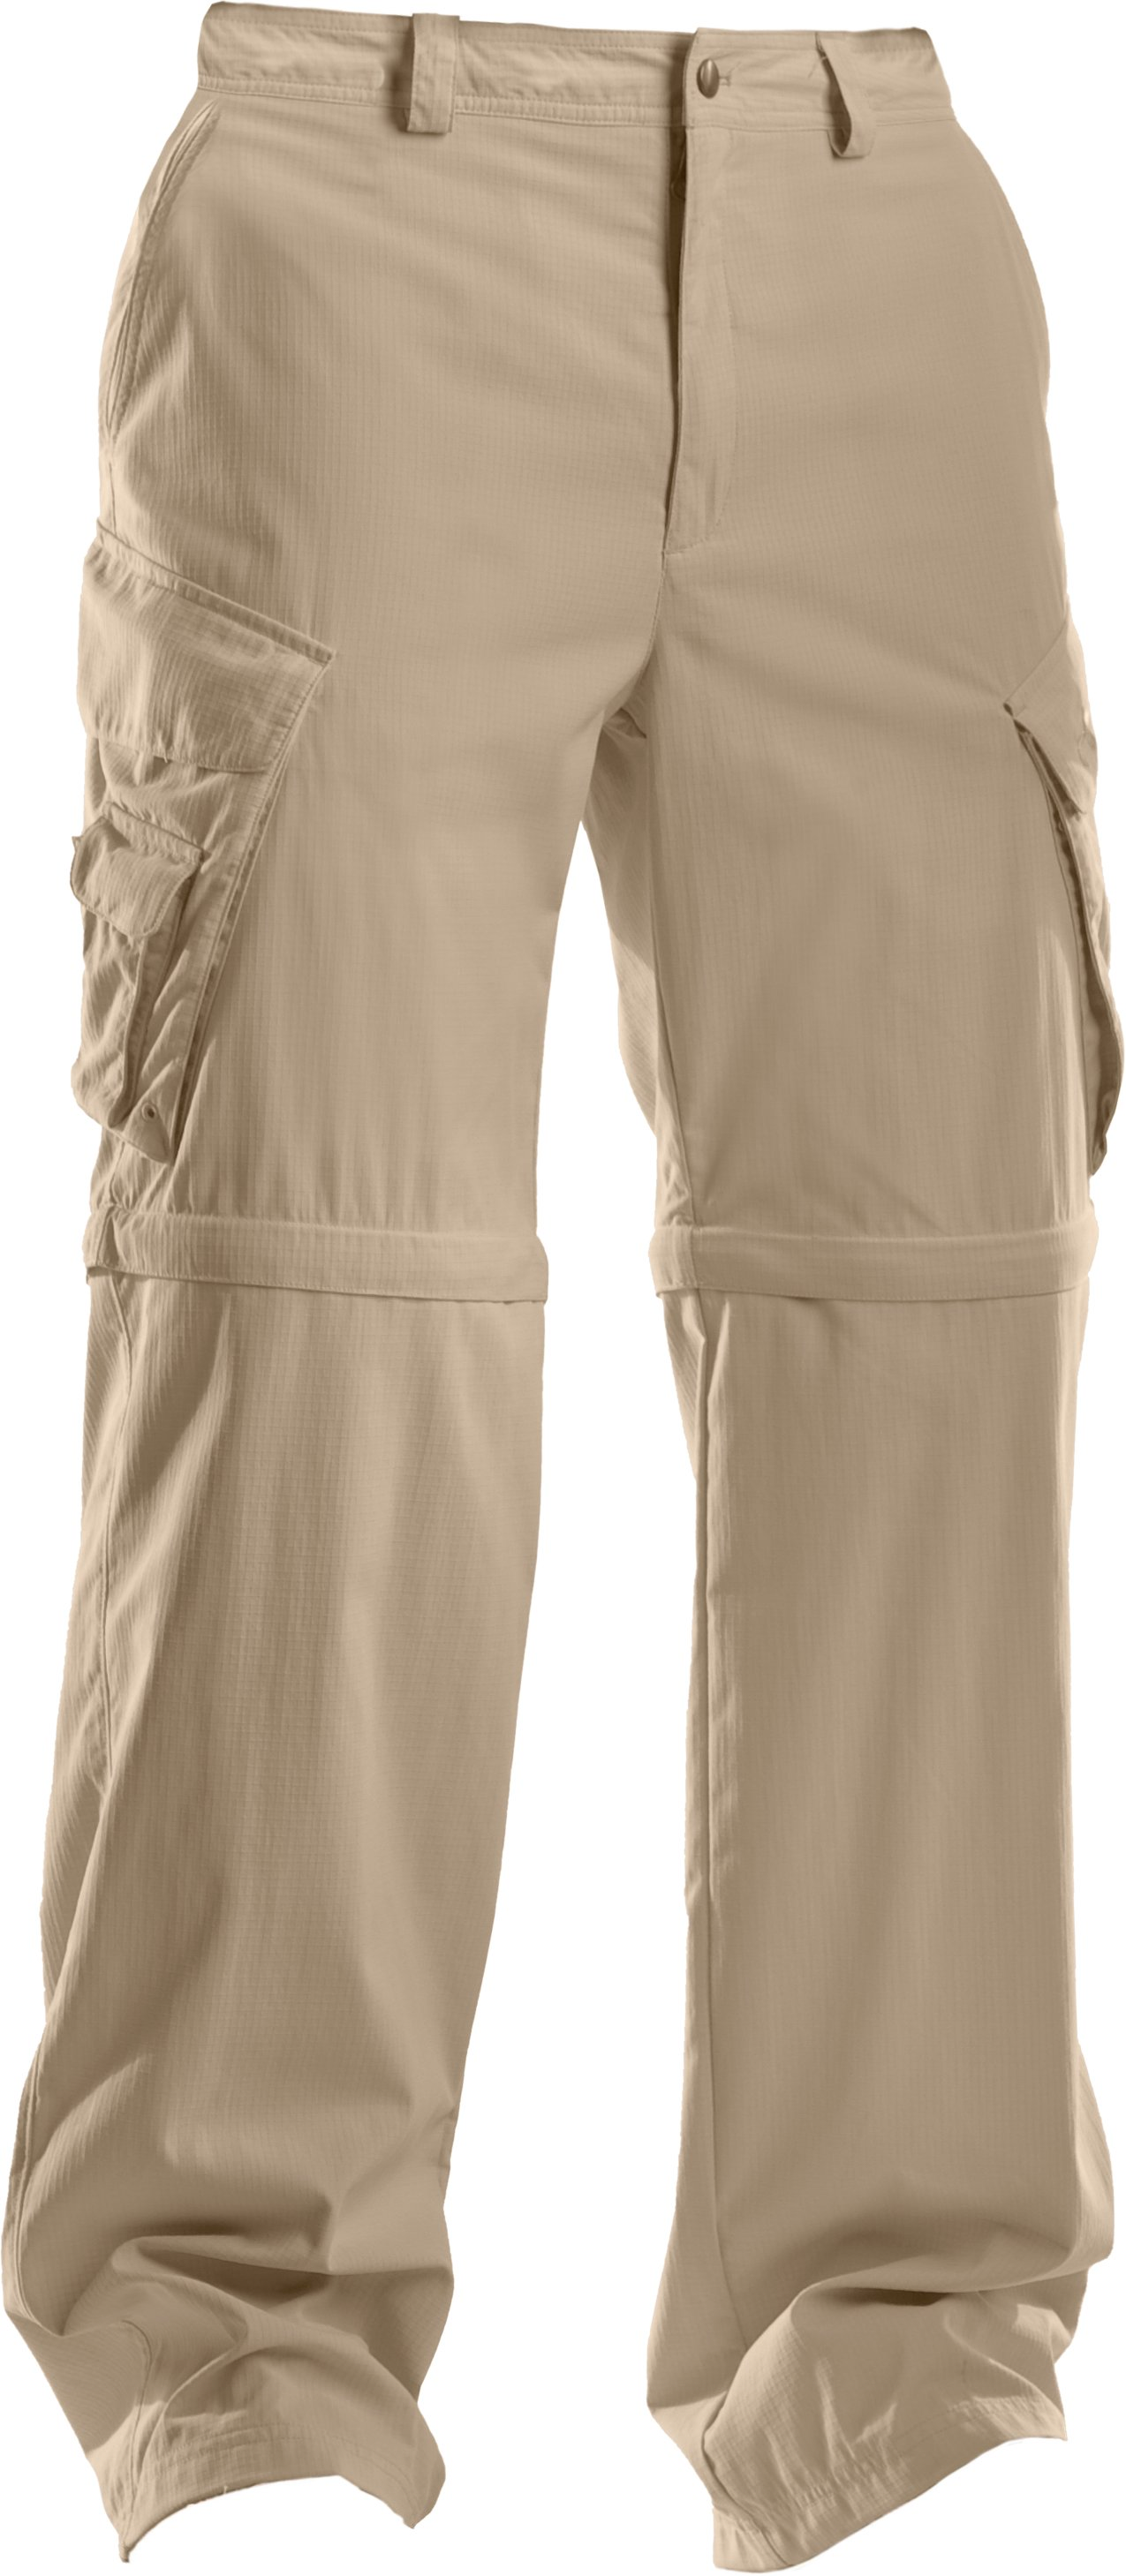 Men's UA Guide Zip-Off Trail Pants III, BRANCH